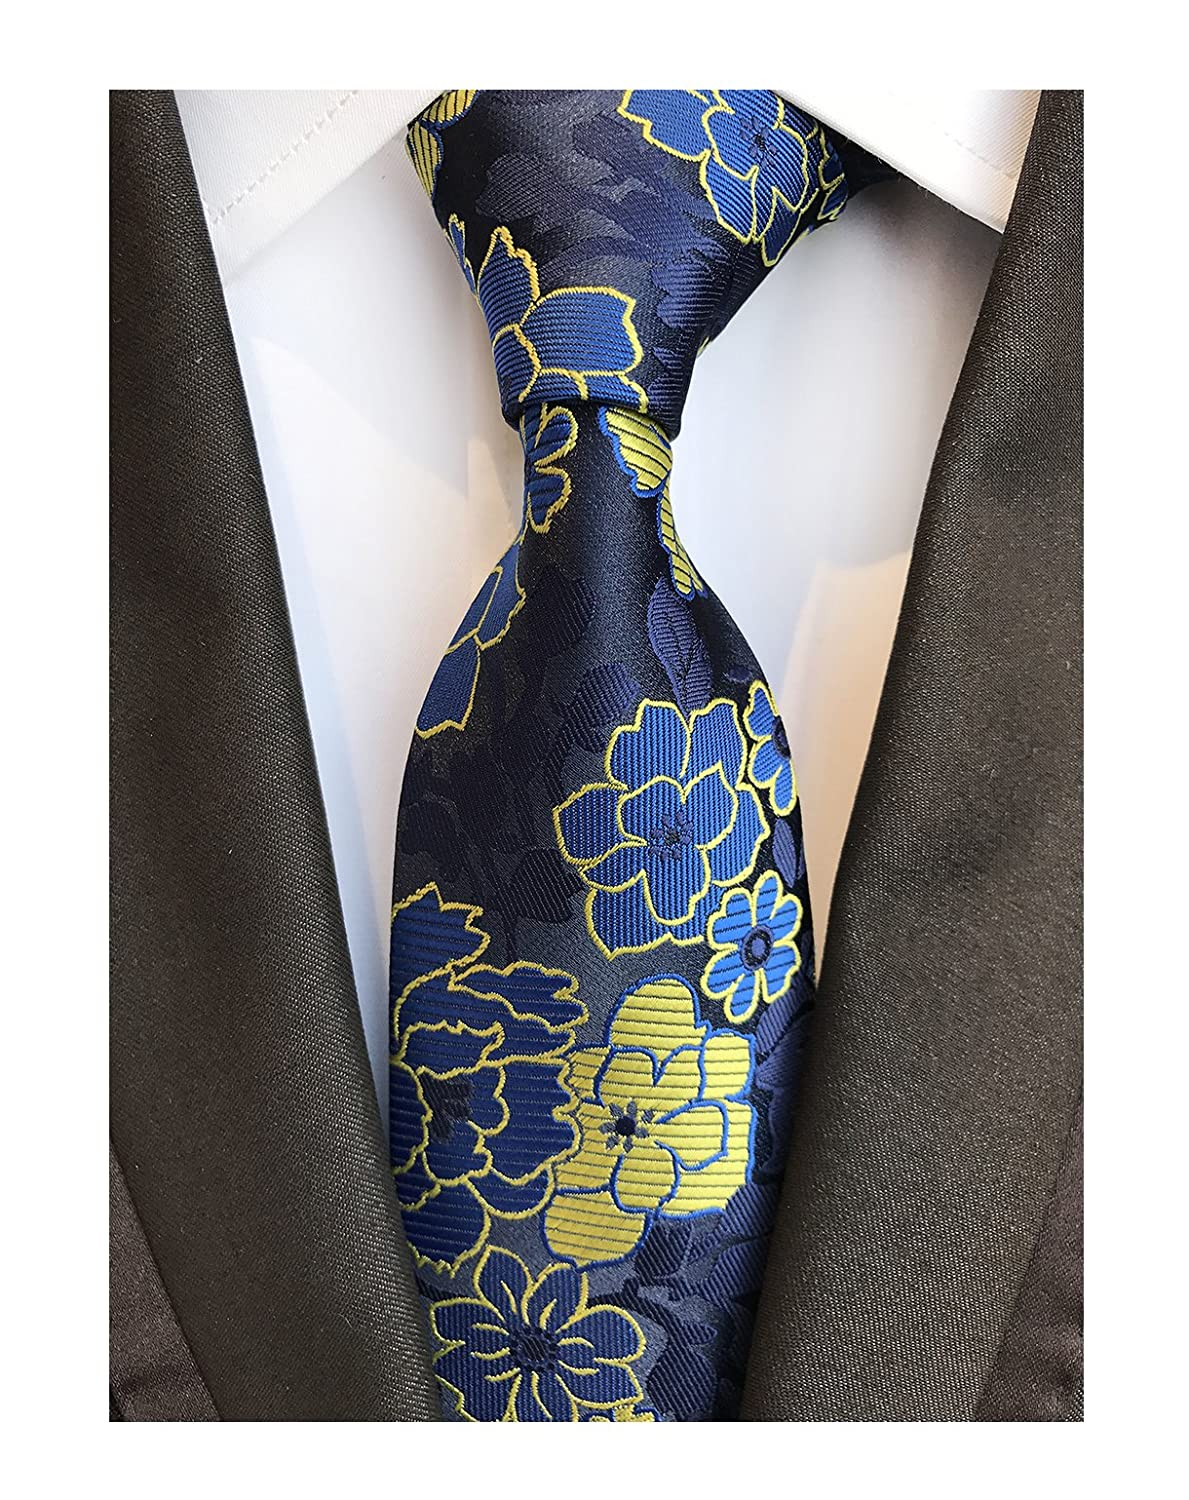 0ba9a2feba53 Amazon.com: Men's Royal Blue Yellow Big Flowers Tie Business Formal Gifts  Necktie for Grooms: Clothing